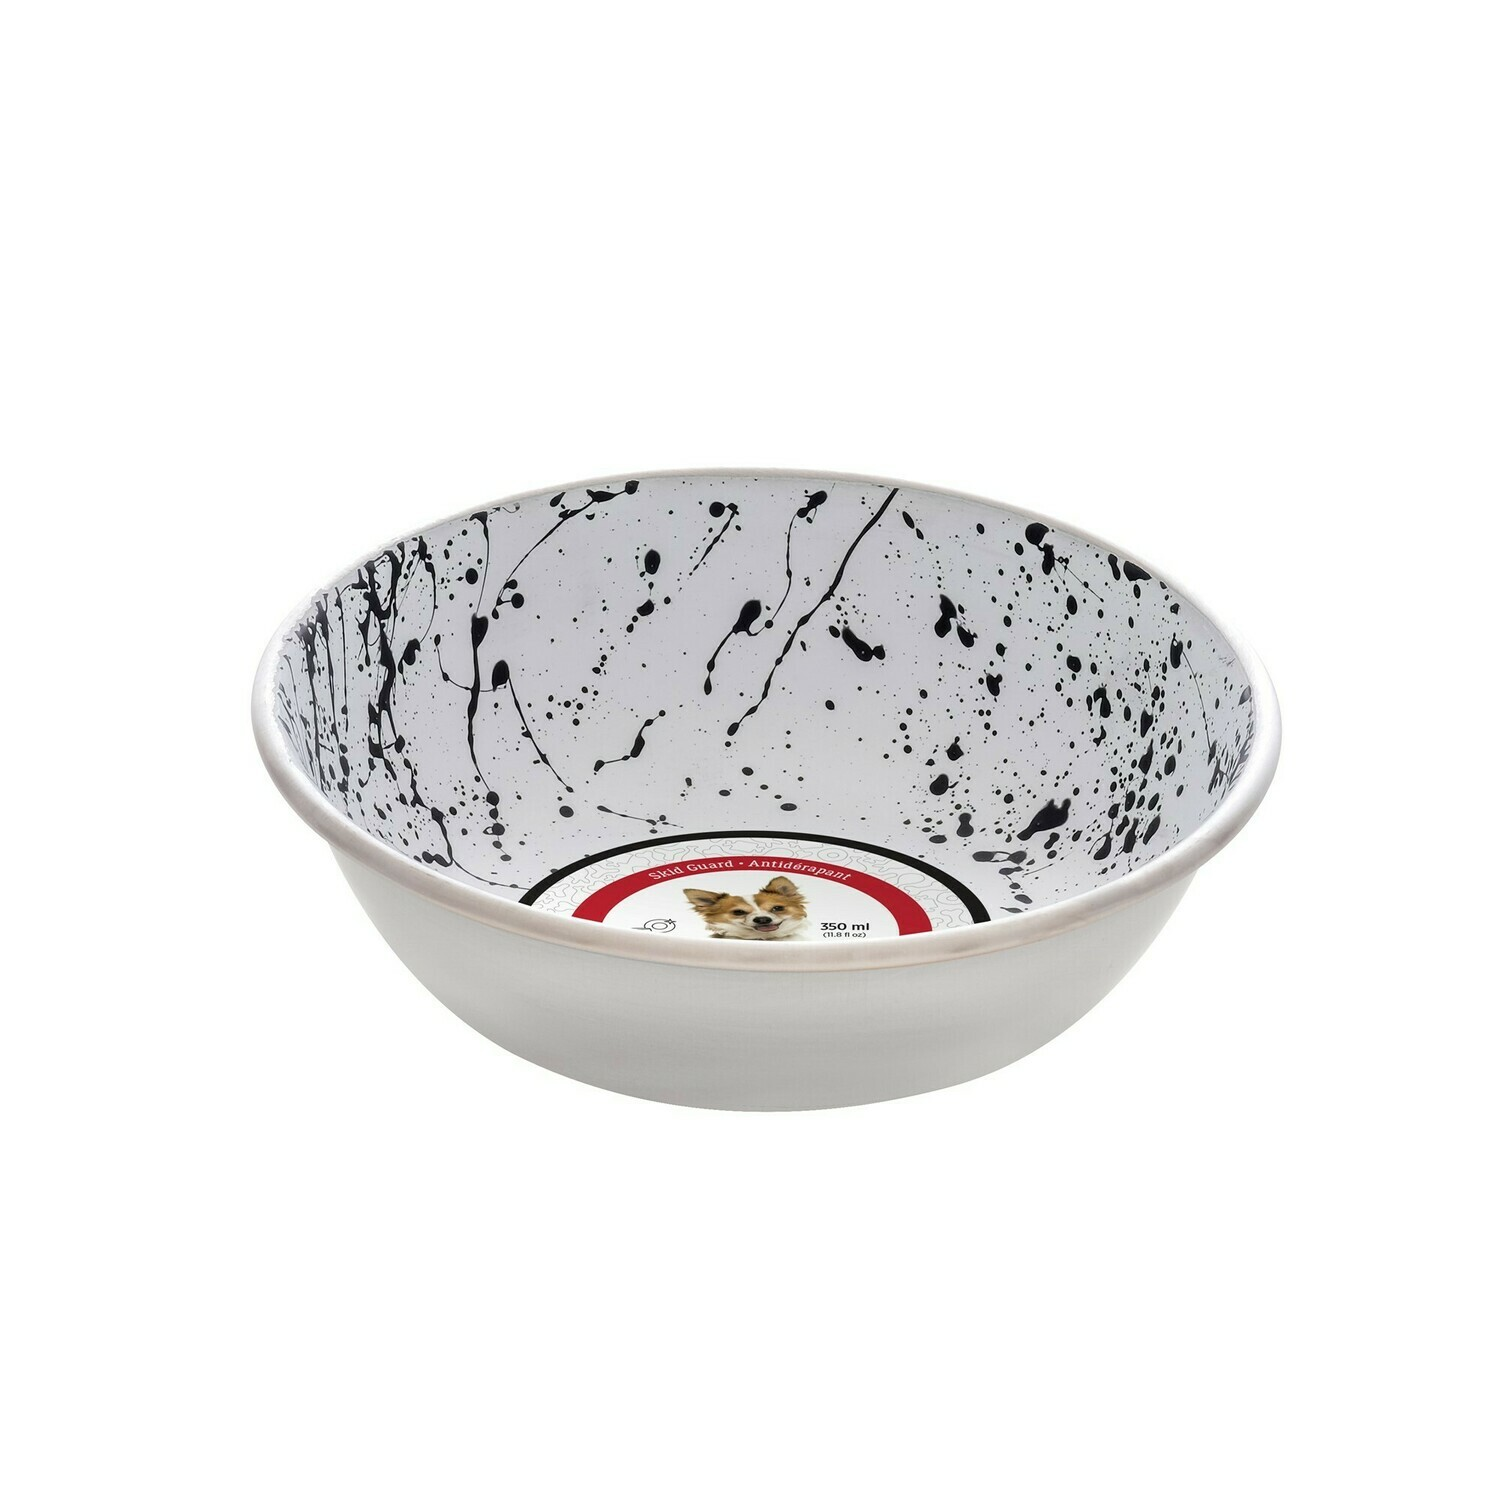 DOGIT STAINLESS STEEL BOWL BLACK & WHITE 350ML.